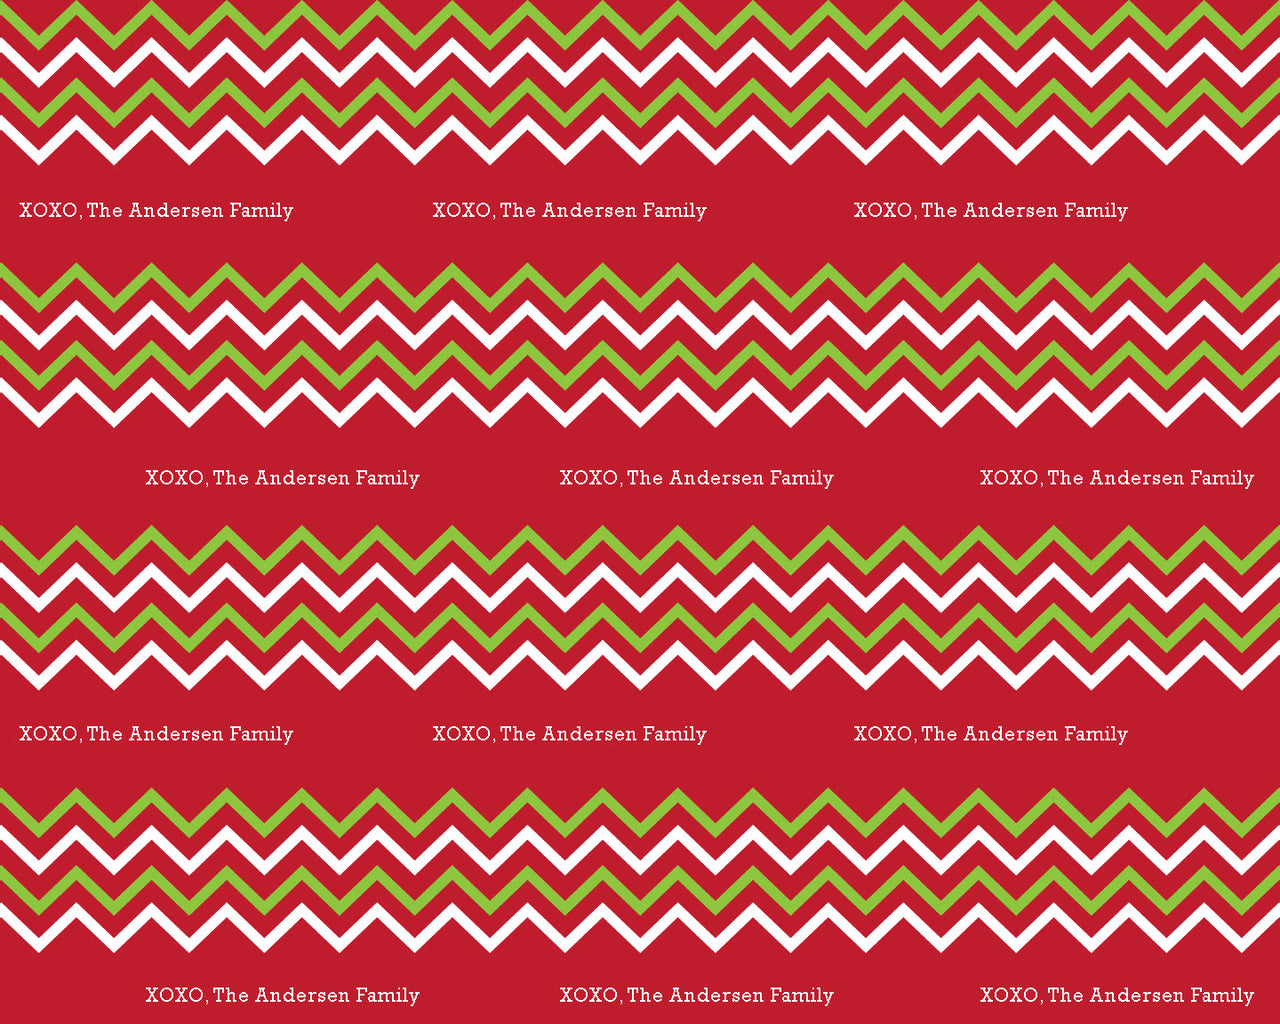 Christmas Chevron Wrapping Paper 6ft - frecklebox